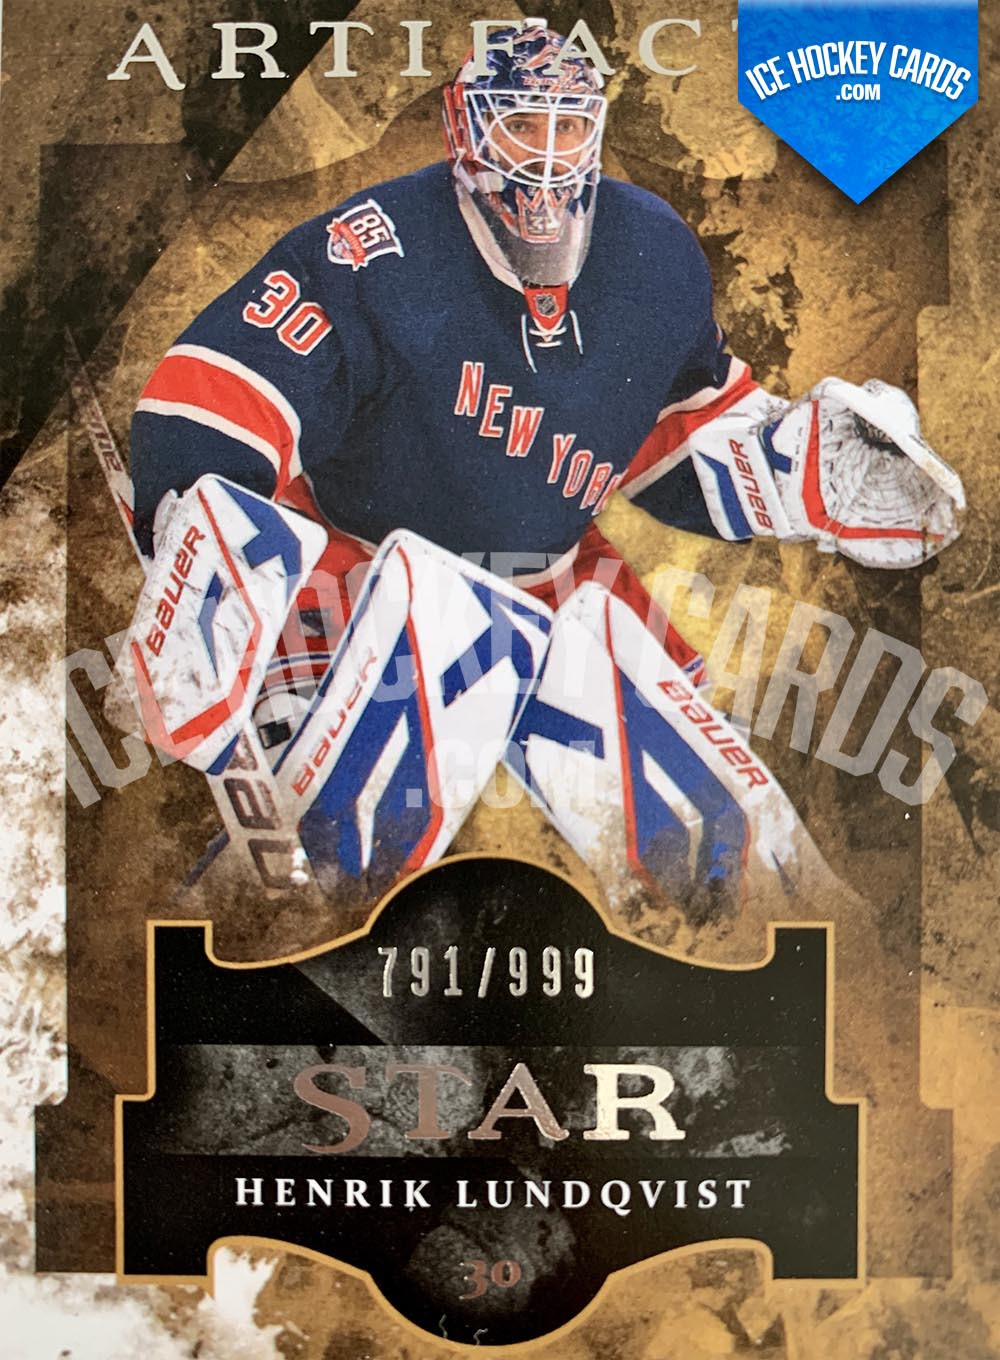 Upper Deck - Artifacts 2011-12 - Henrik Lundqvist Star Card